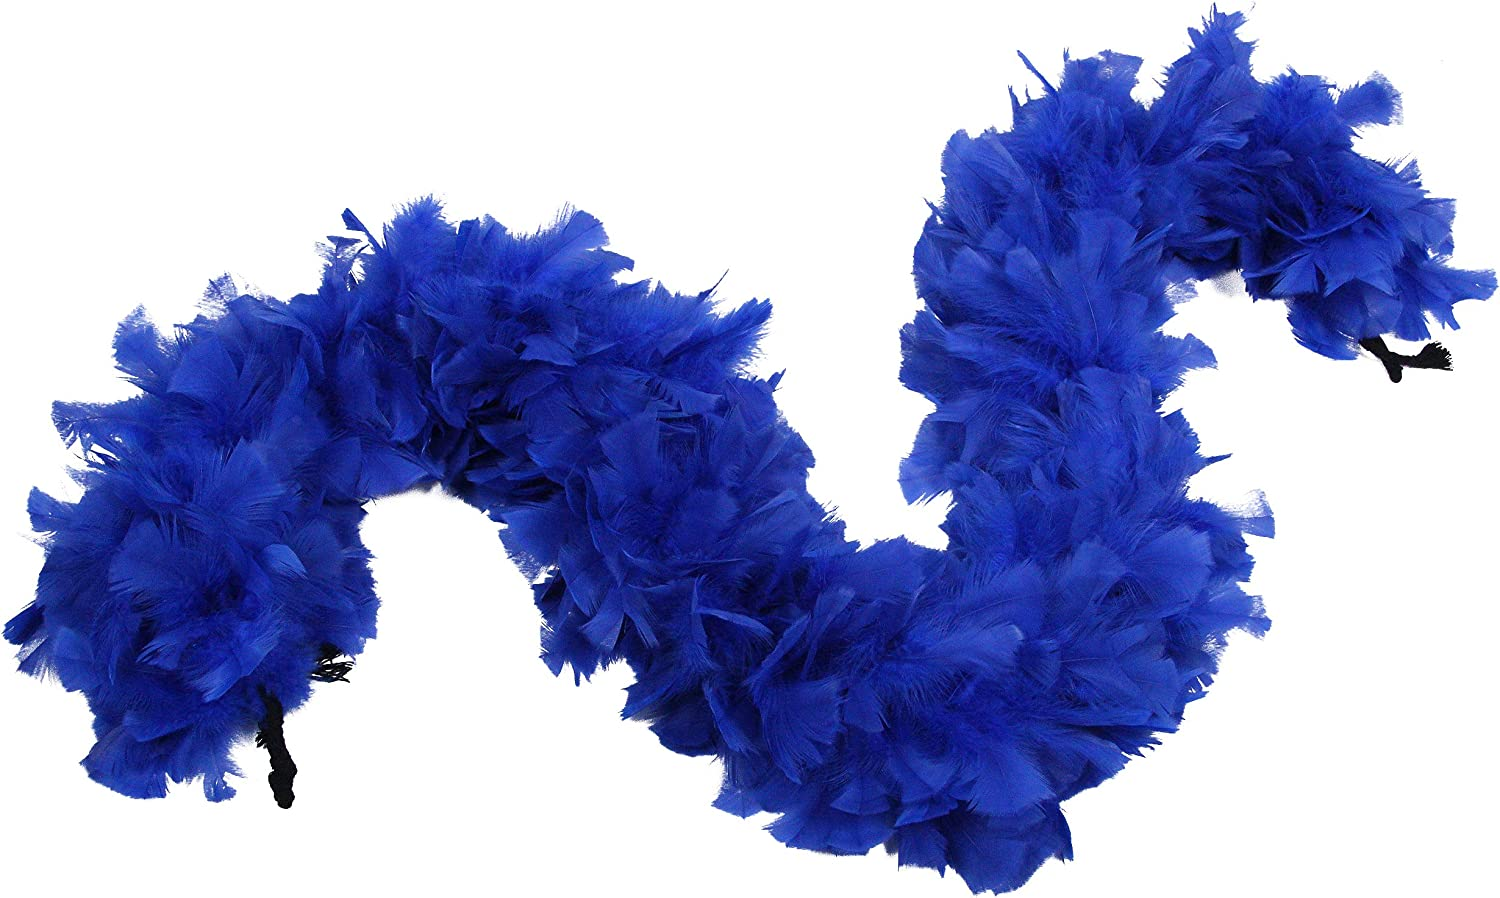 Ws/&Wt 2 Yards 150g Large Fluffy Turkey Ruff Feather Boa for Adult Halloween Cosplay Costume Accessory Holiday Decors